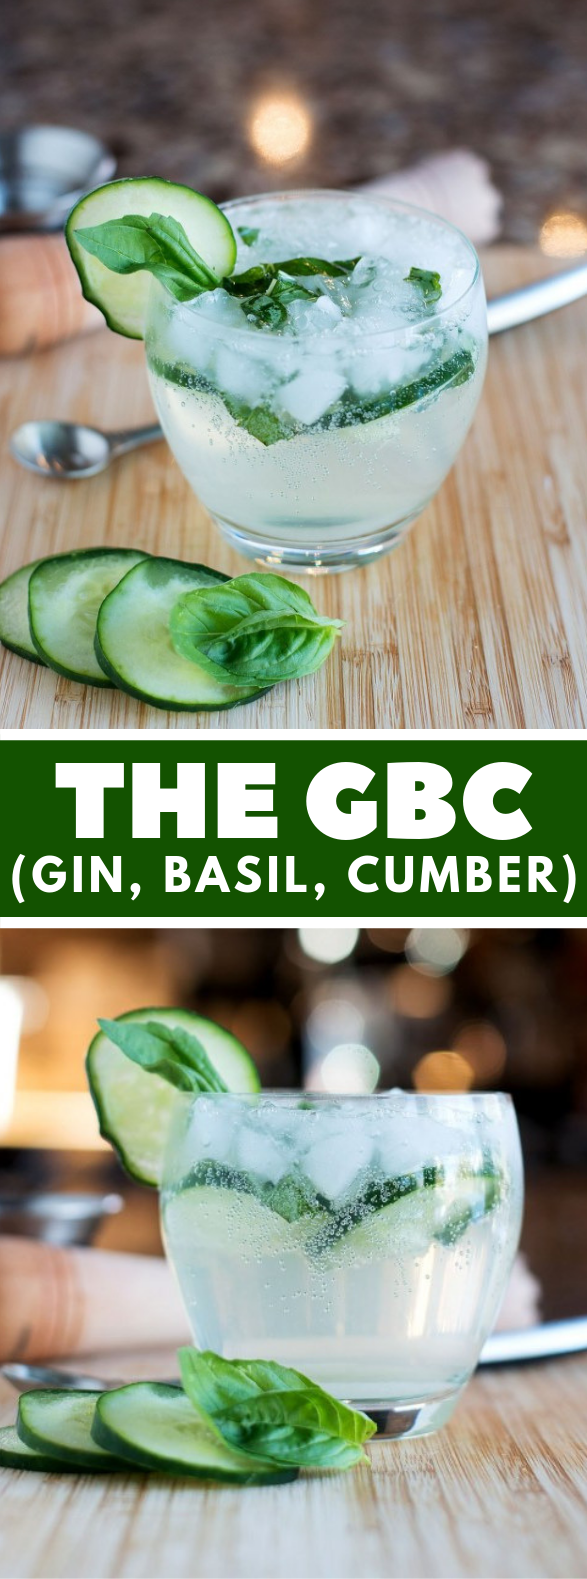 The GBC (Gin, Basil, Cumber) #drinks #cocktails